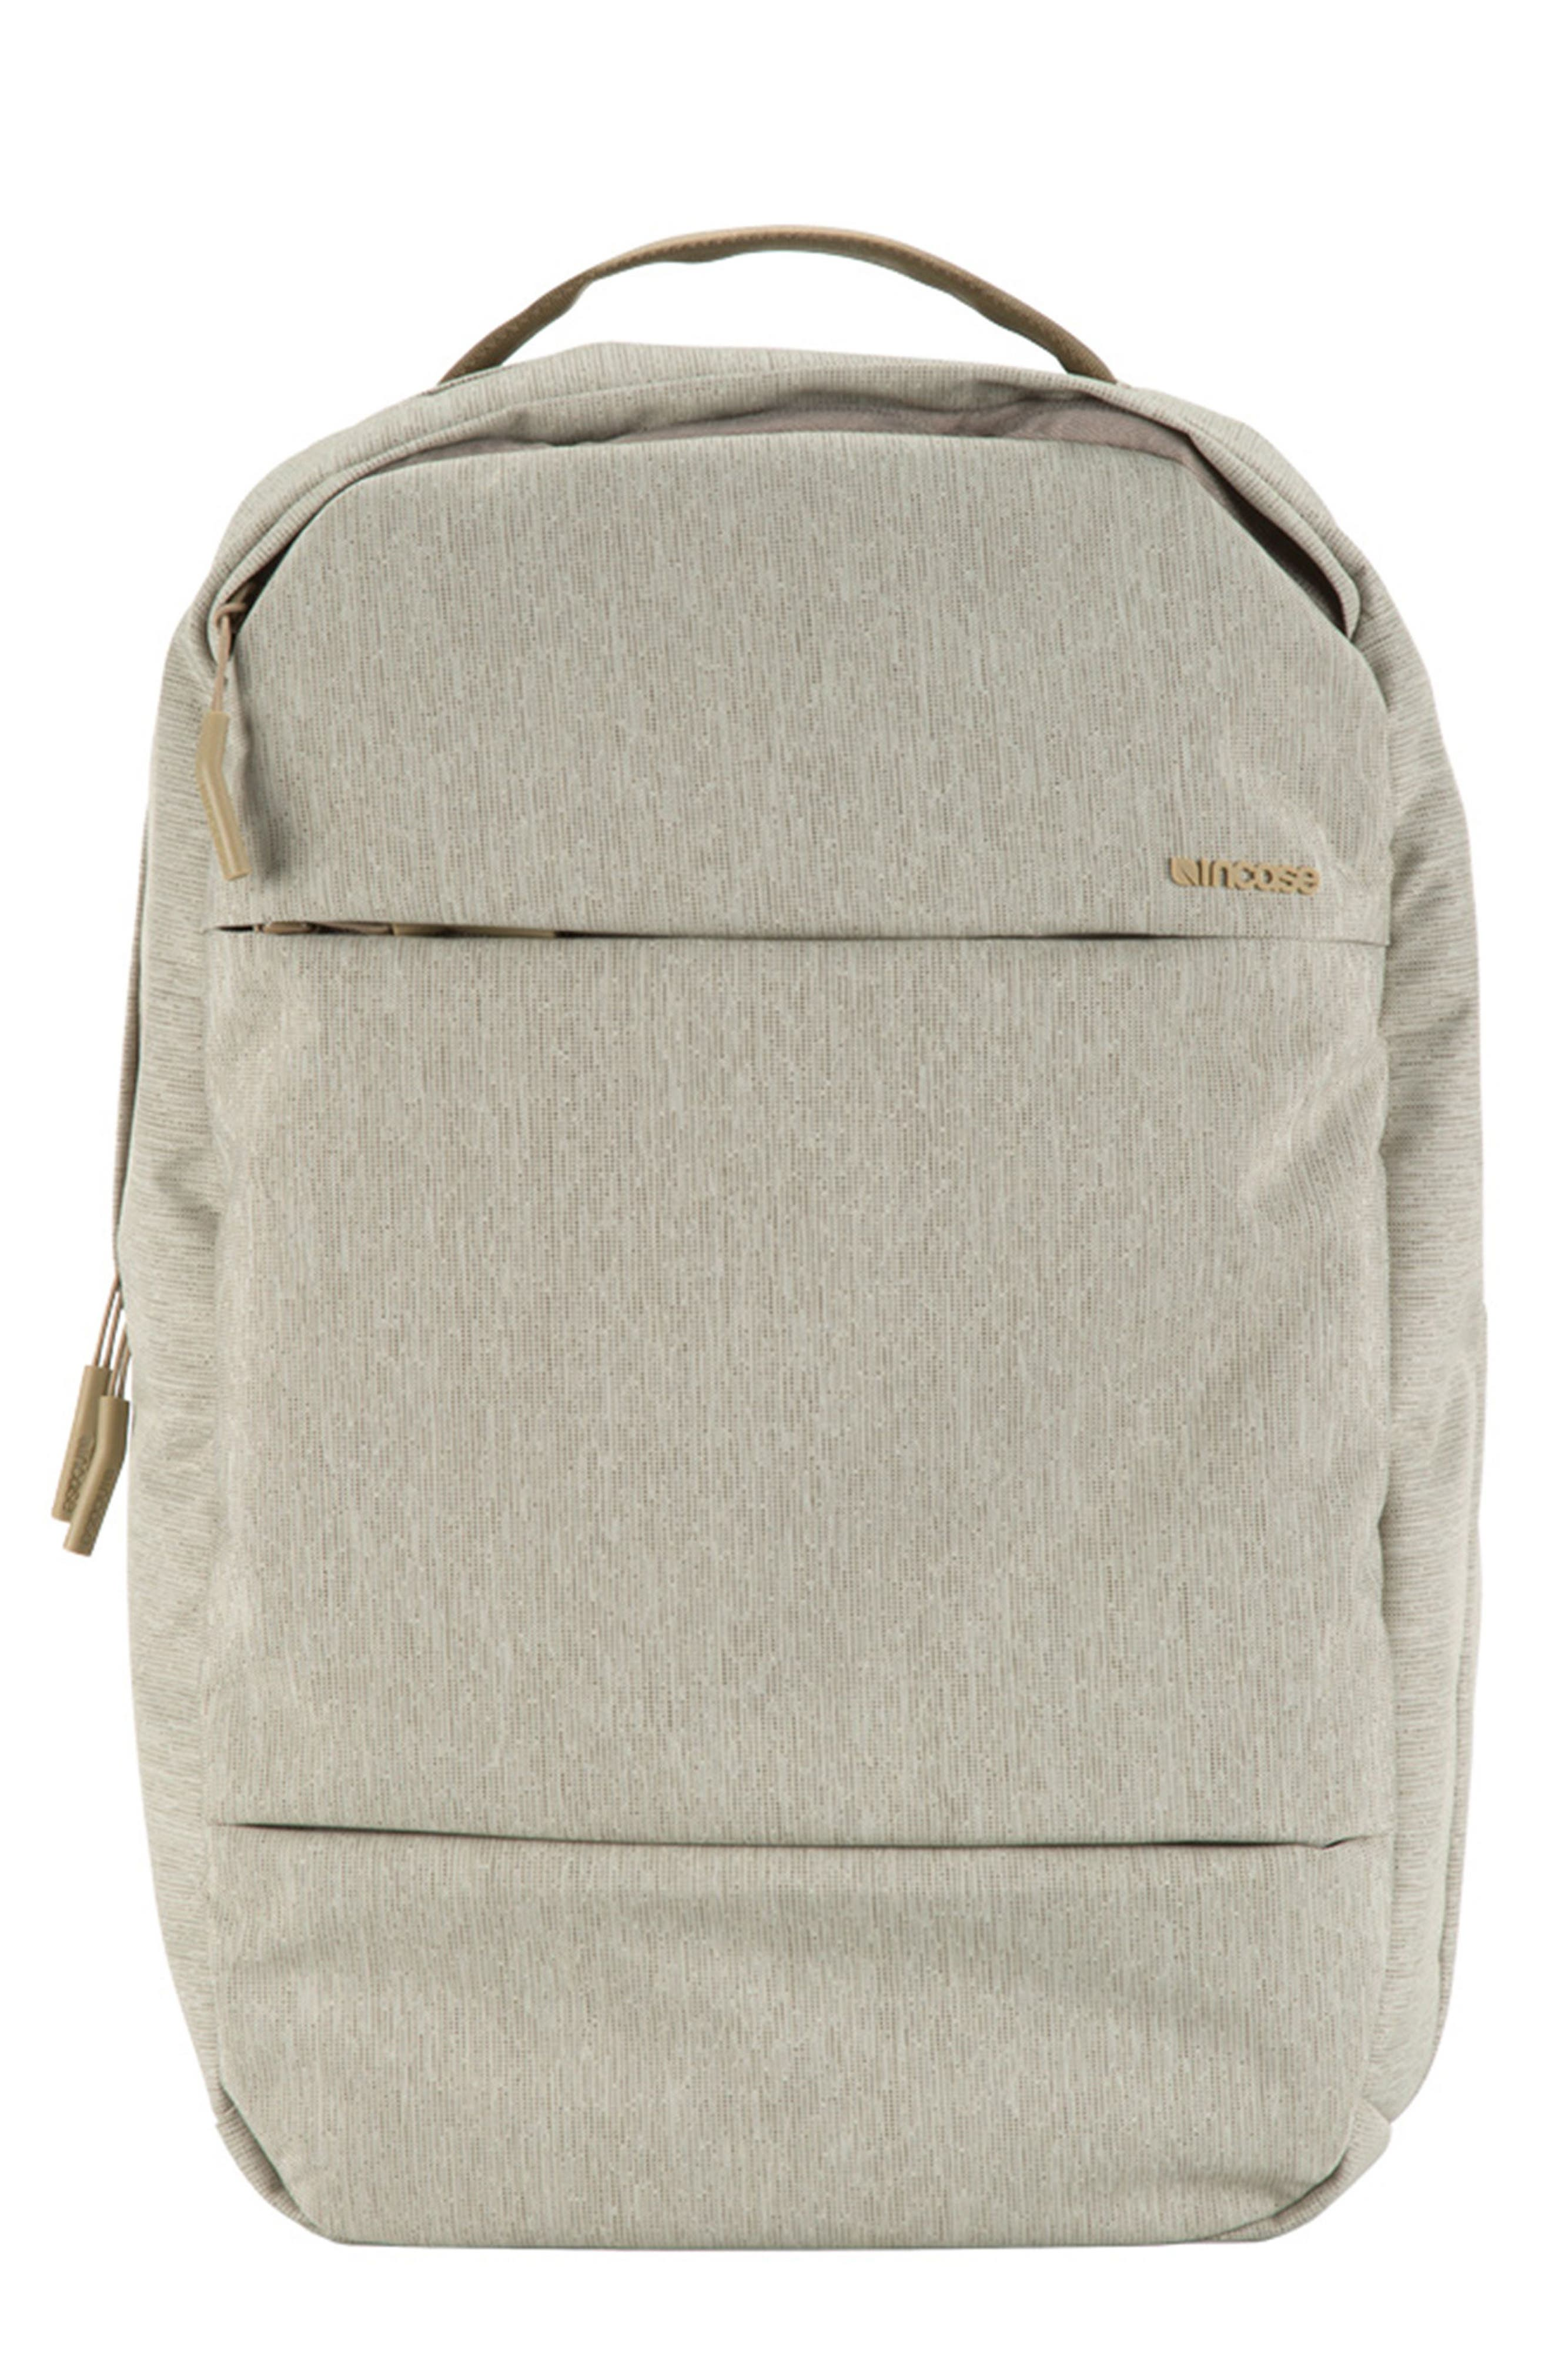 City Compact Backpack,                         Main,                         color, HEATHER KHAKI